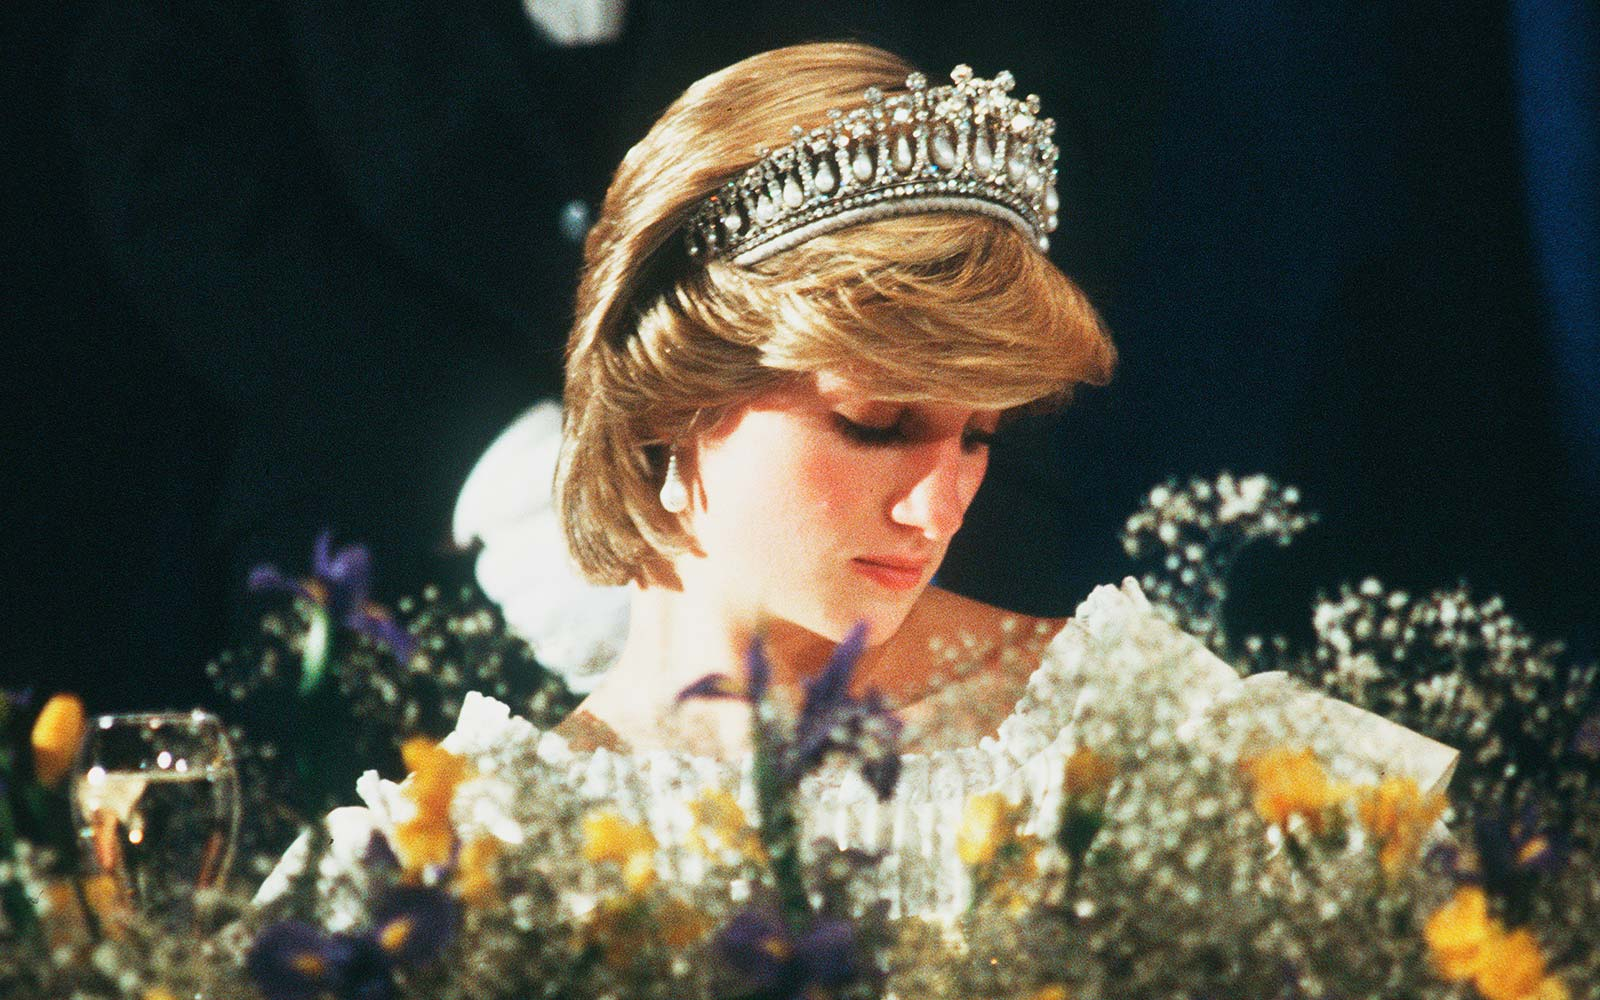 Diana, Princess of Wales wears the Cambridge Lover's Knot tiara (Queen Mary's Tiara) and diamond earrings during a banquet